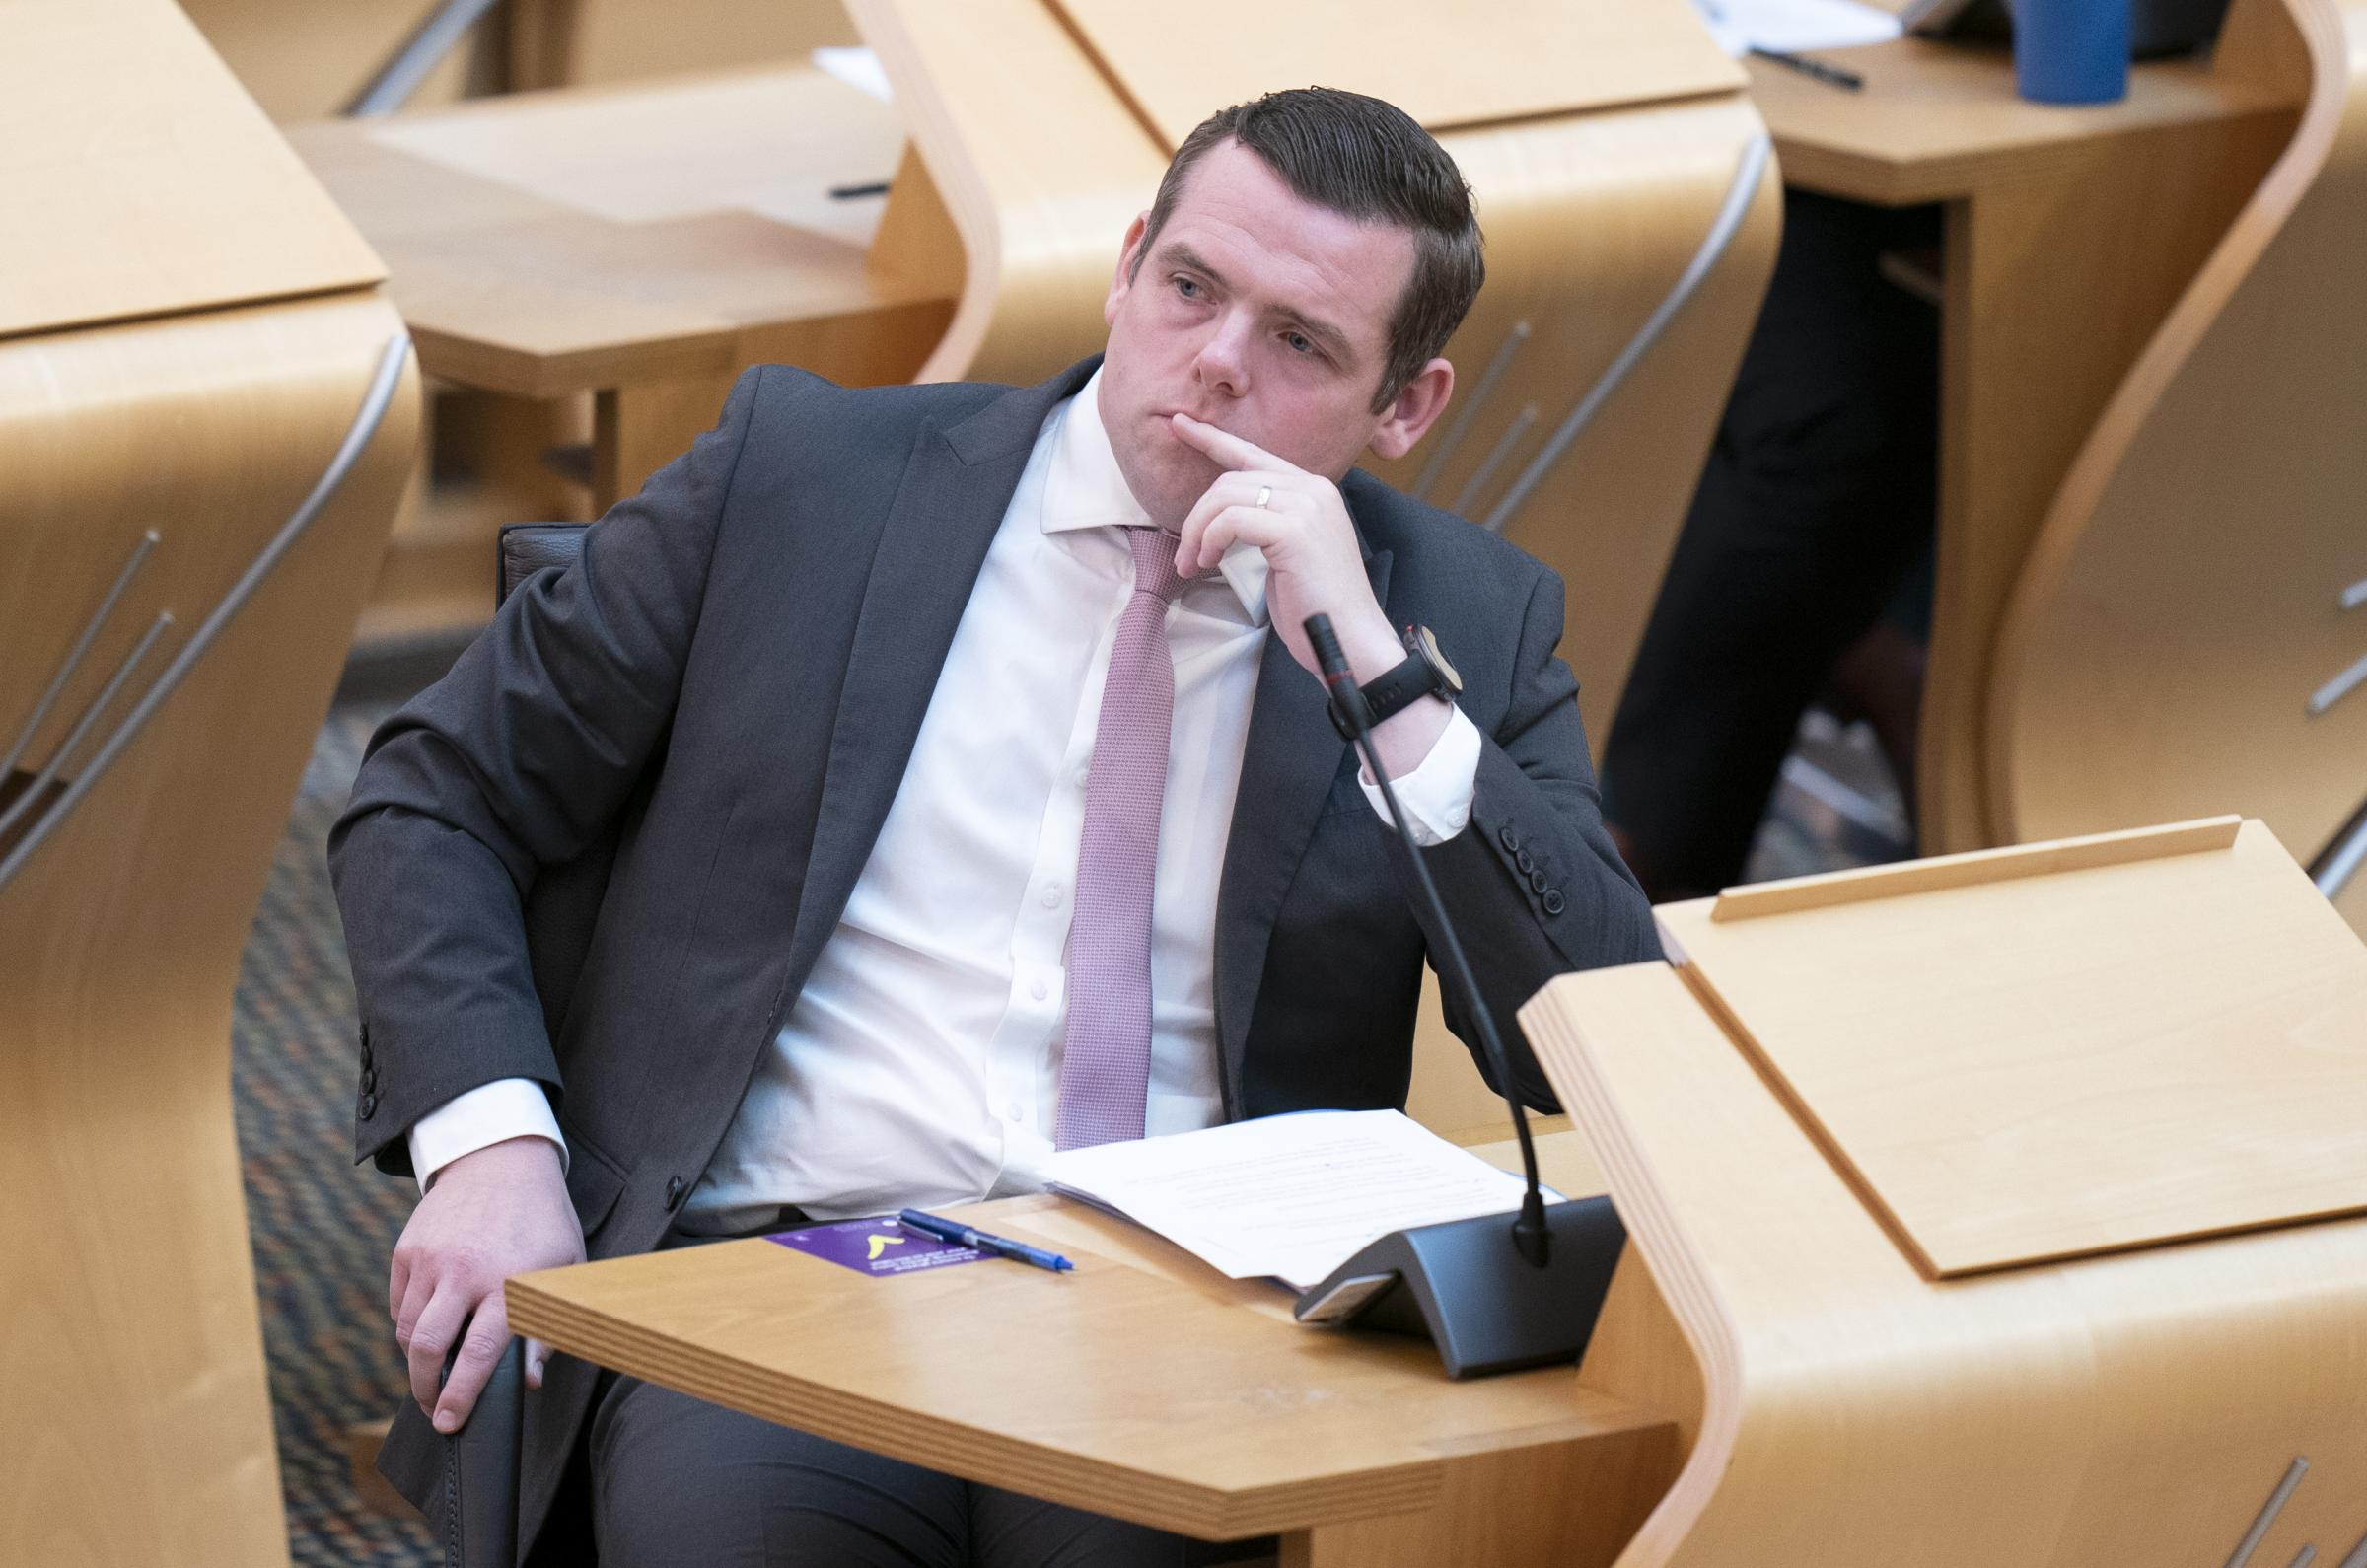 Scottish Tories deny Brexit's damaging impact on the country during Holyrood debate